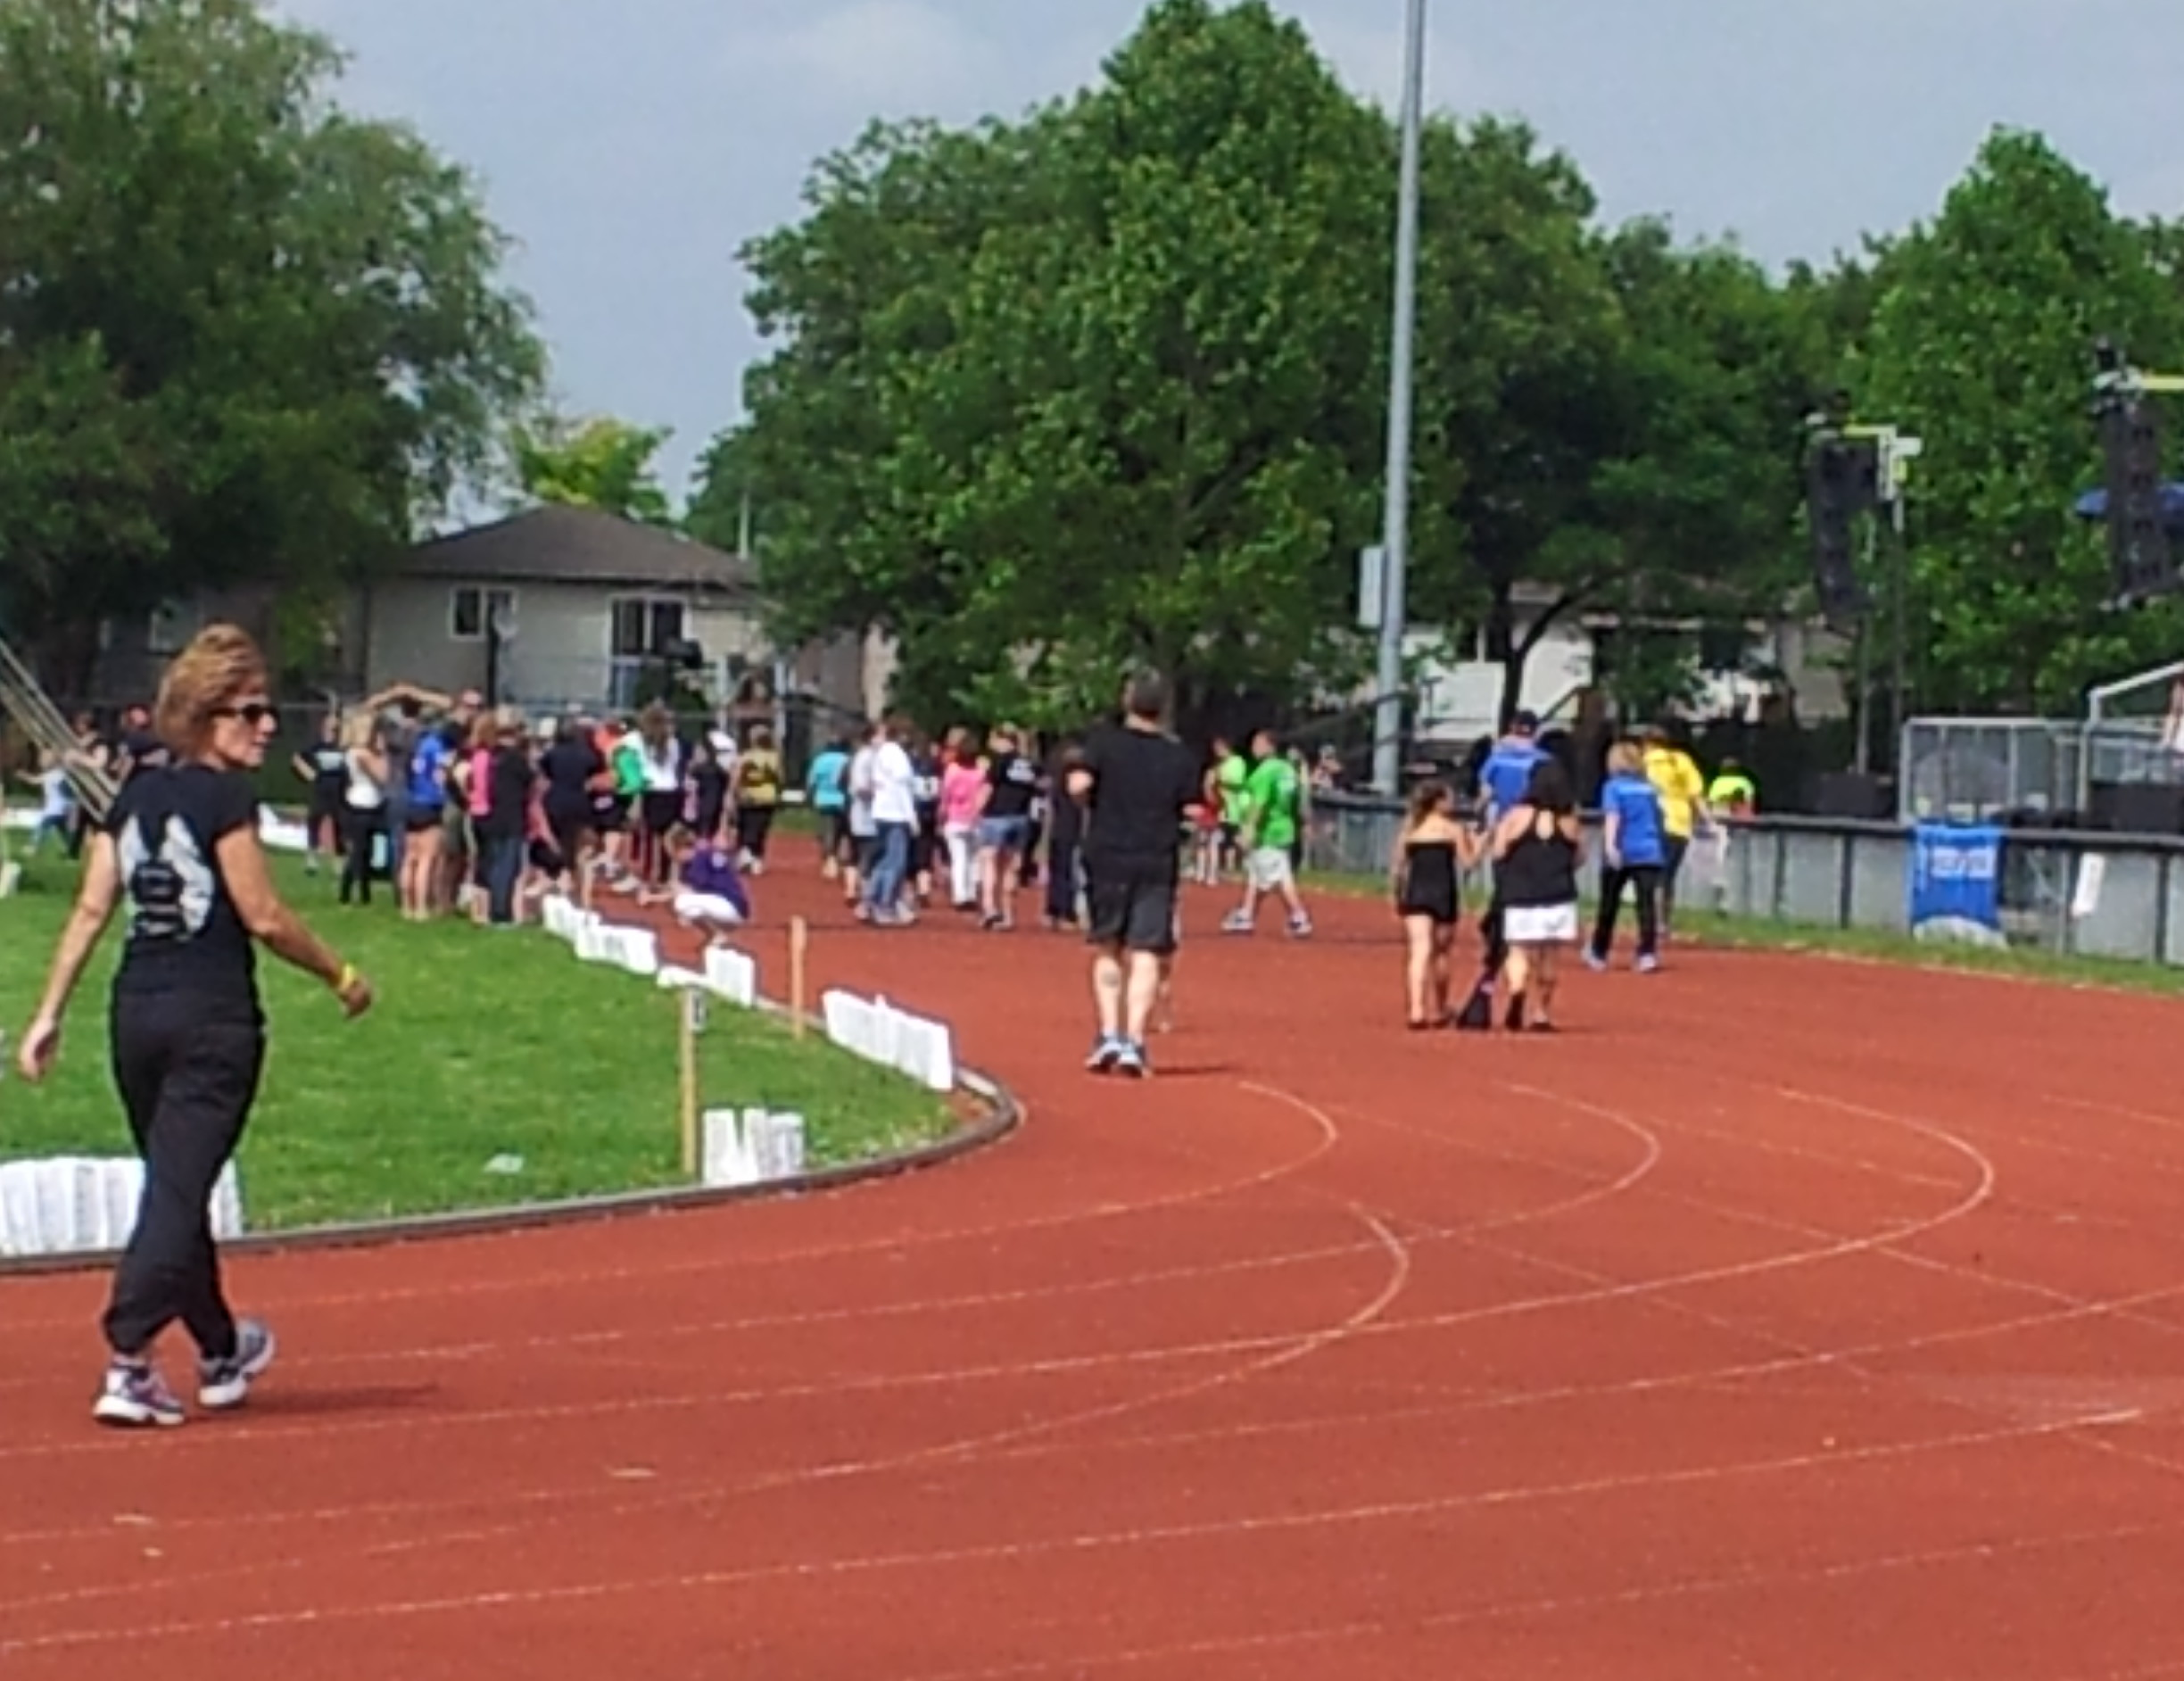 Local residents participate in Relay for Life 2015 at Chatham Kent Secondary School, June 13, 2015. (Photo by the Blackburn Radio Summer Patrol)